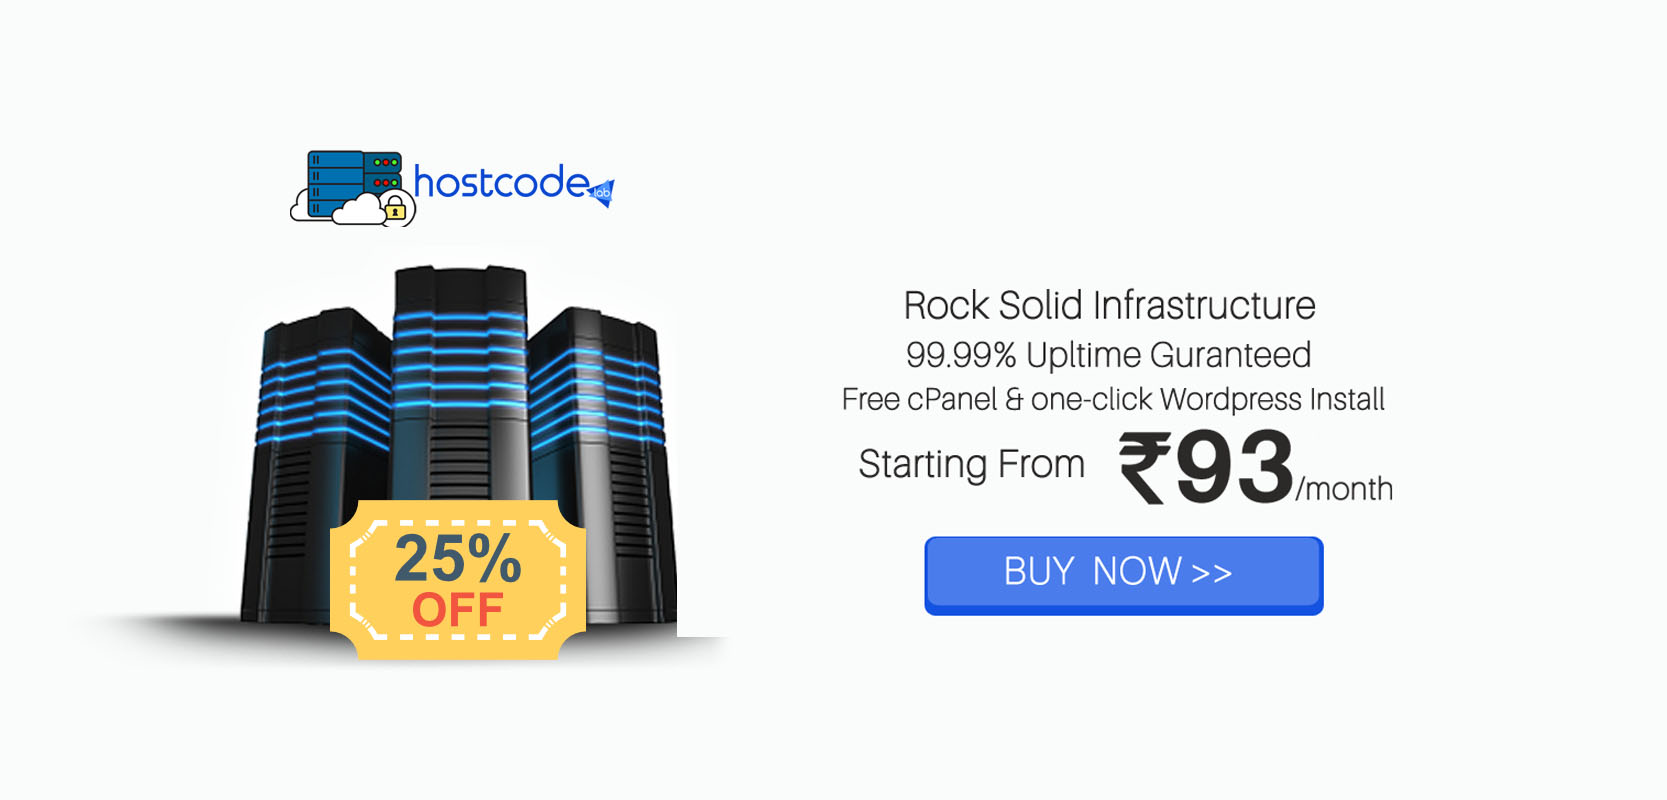 hostcodelab hosting,hostcodelab.com/in/ ,india web hosting,web hostingices in india,startup of india,startup hosting plan,web hosting discount,make in india ,